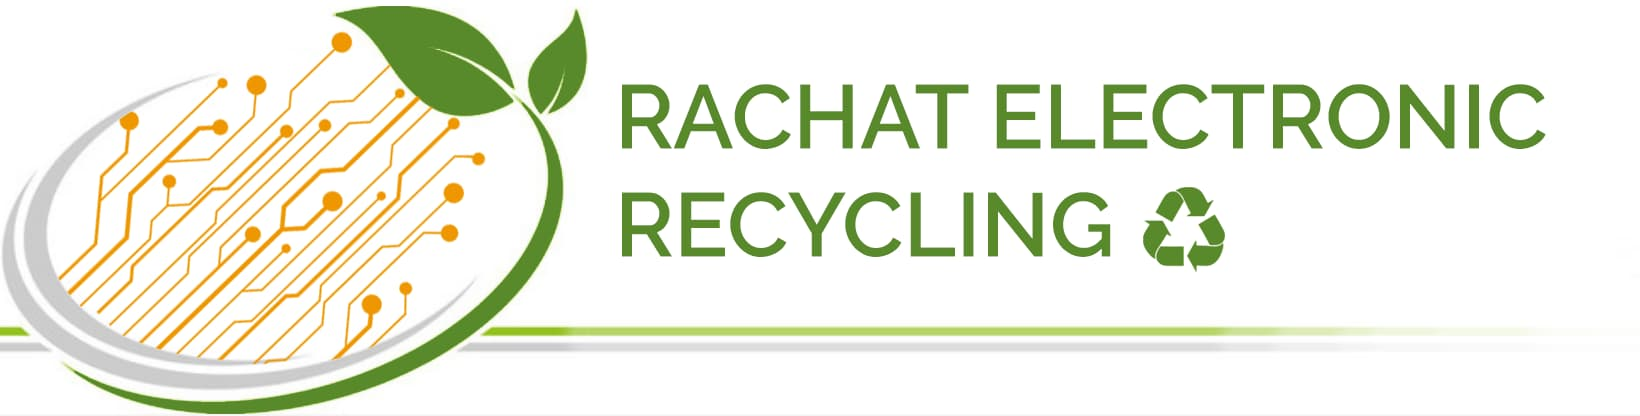 Rachat Electronic Recycling